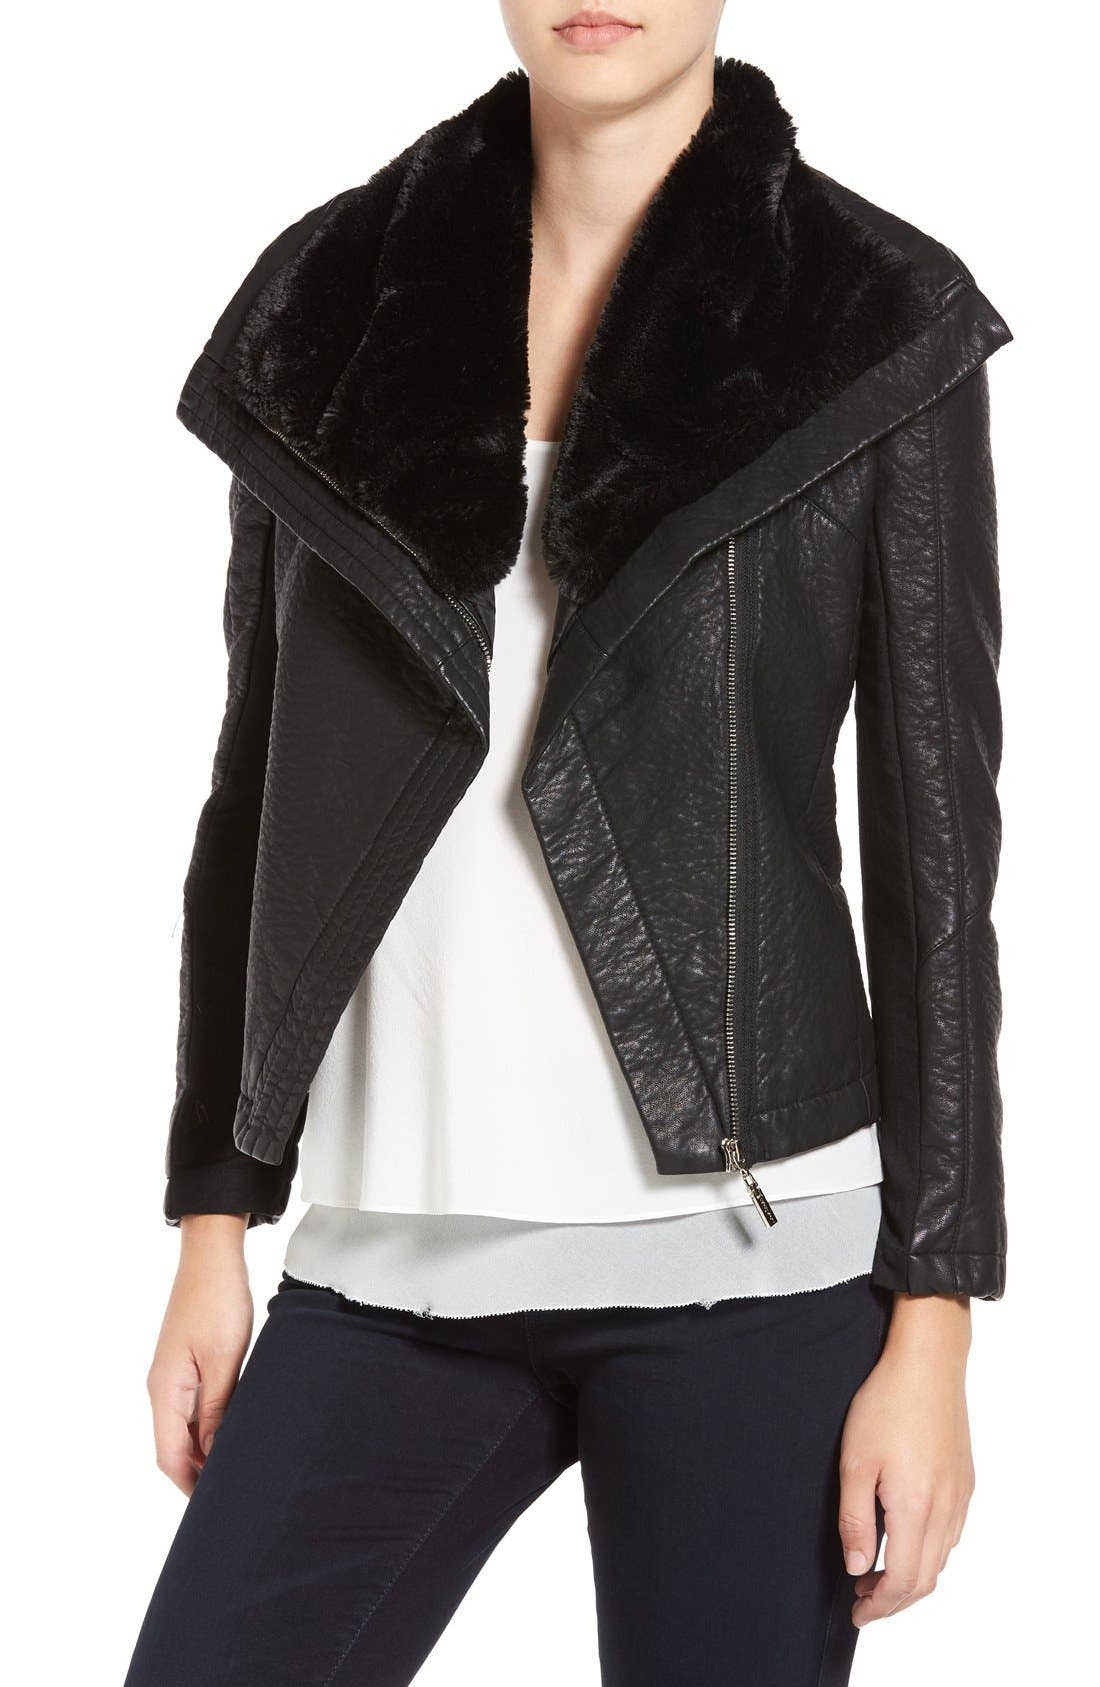 Main Image - Love Token Faux Leather Jacket with Faux Shearling Trim